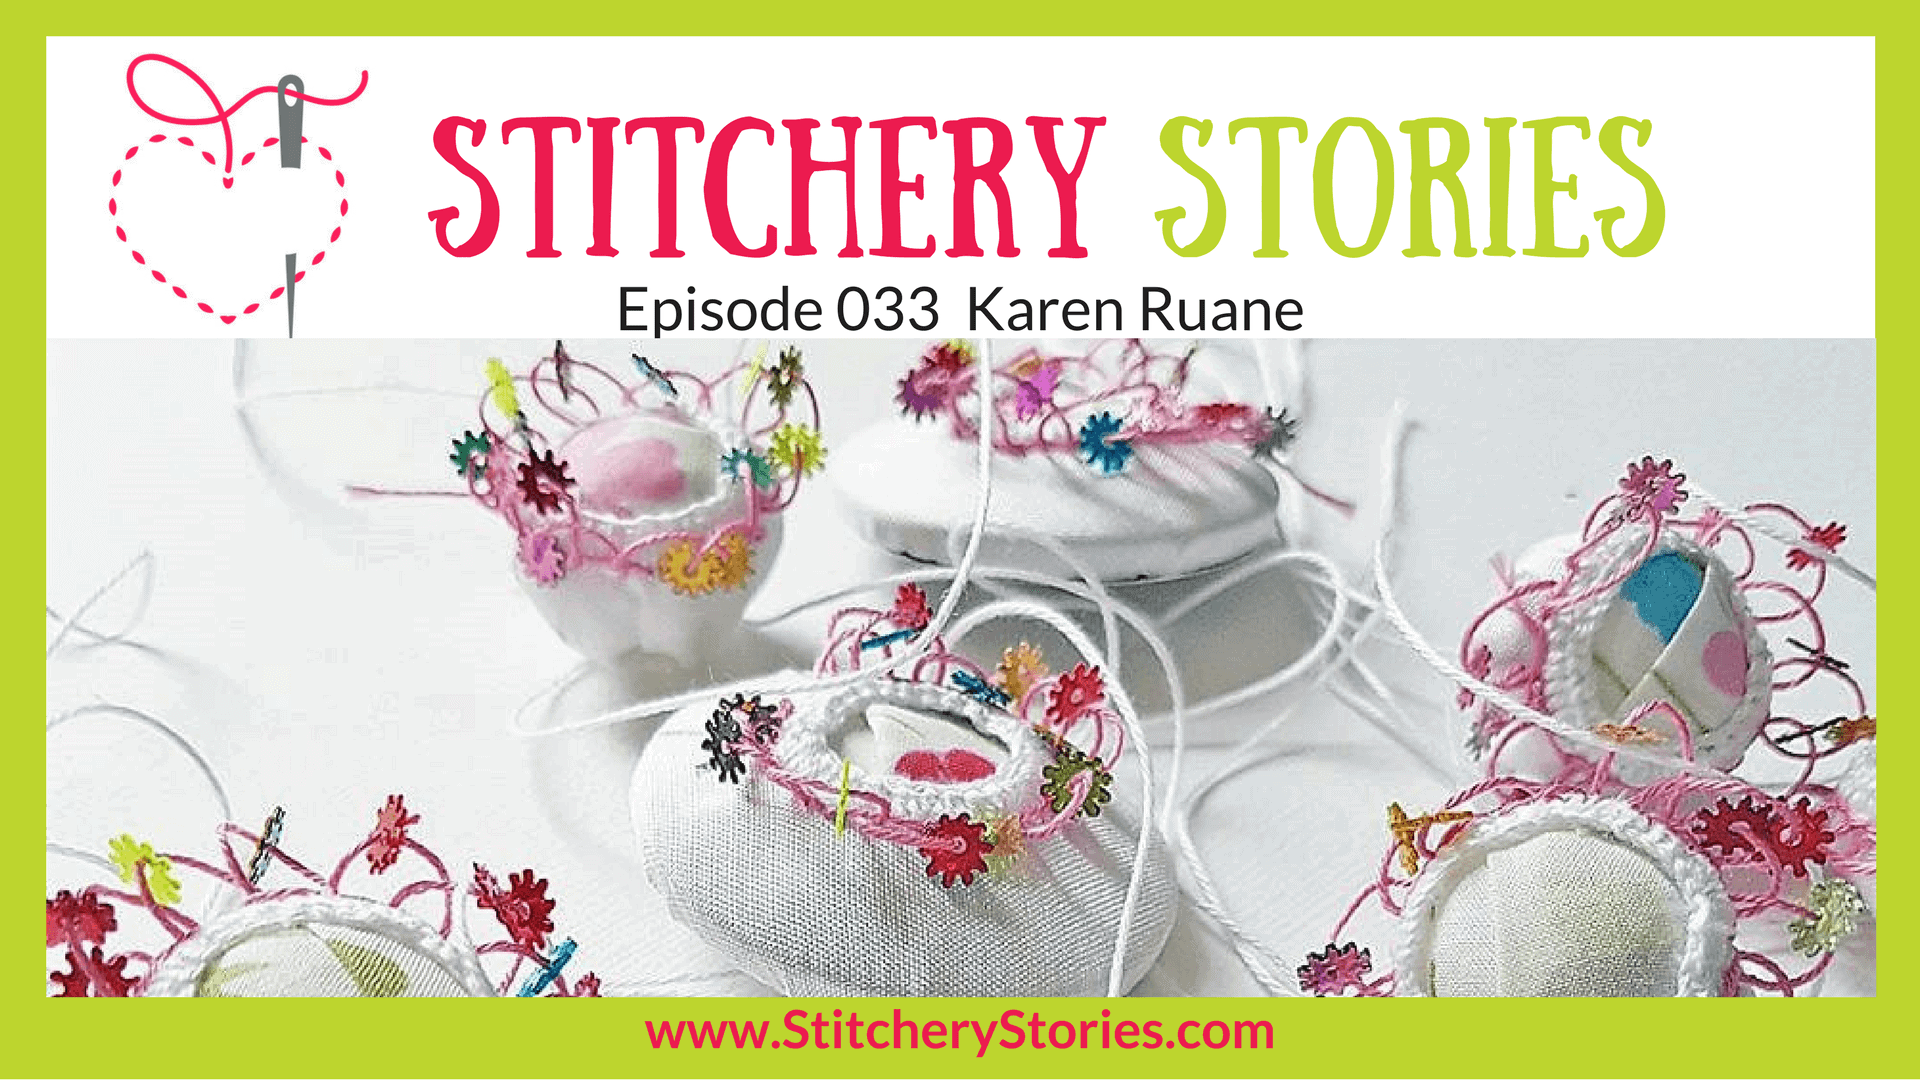 Karen Ruane Stitchery Stories Textile Art Podcast Wide Art